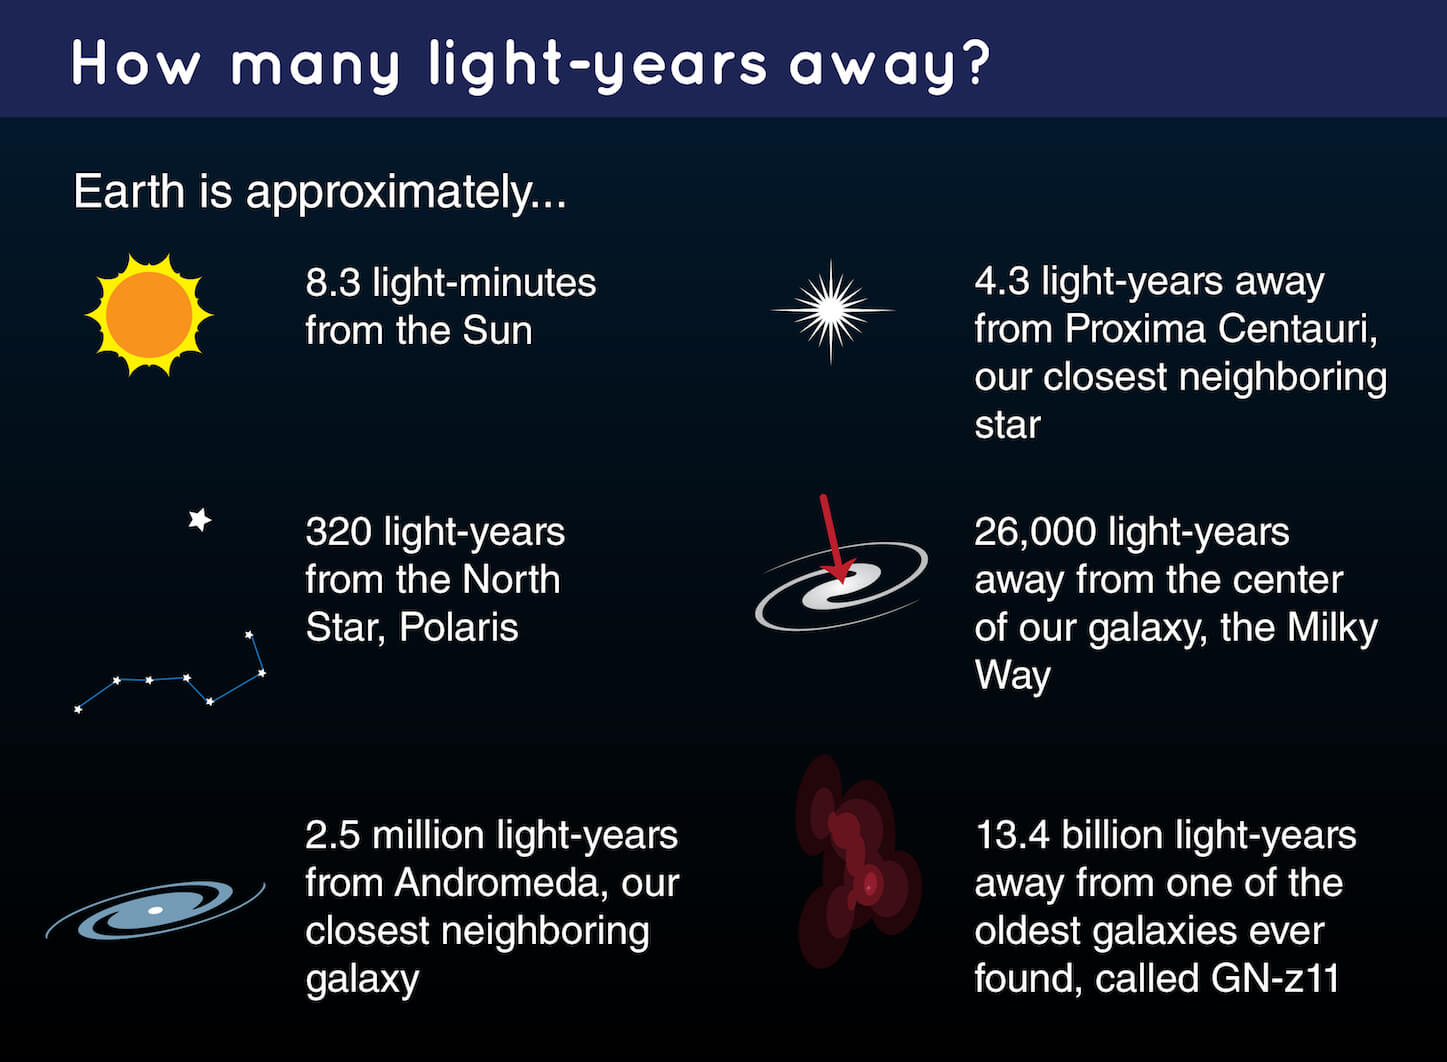 A chart explaining how far away certain objects are from Earth. The Sun is 8.3 light-minutes away. Polaris is 320 light-years away. Andromeda is 2.5 million light years away. Proxima Centauri is 4.3 light-years away. The center of the Milky Way is 26,000 light-years away. GN-z11 is 13.4 billion light-years away.